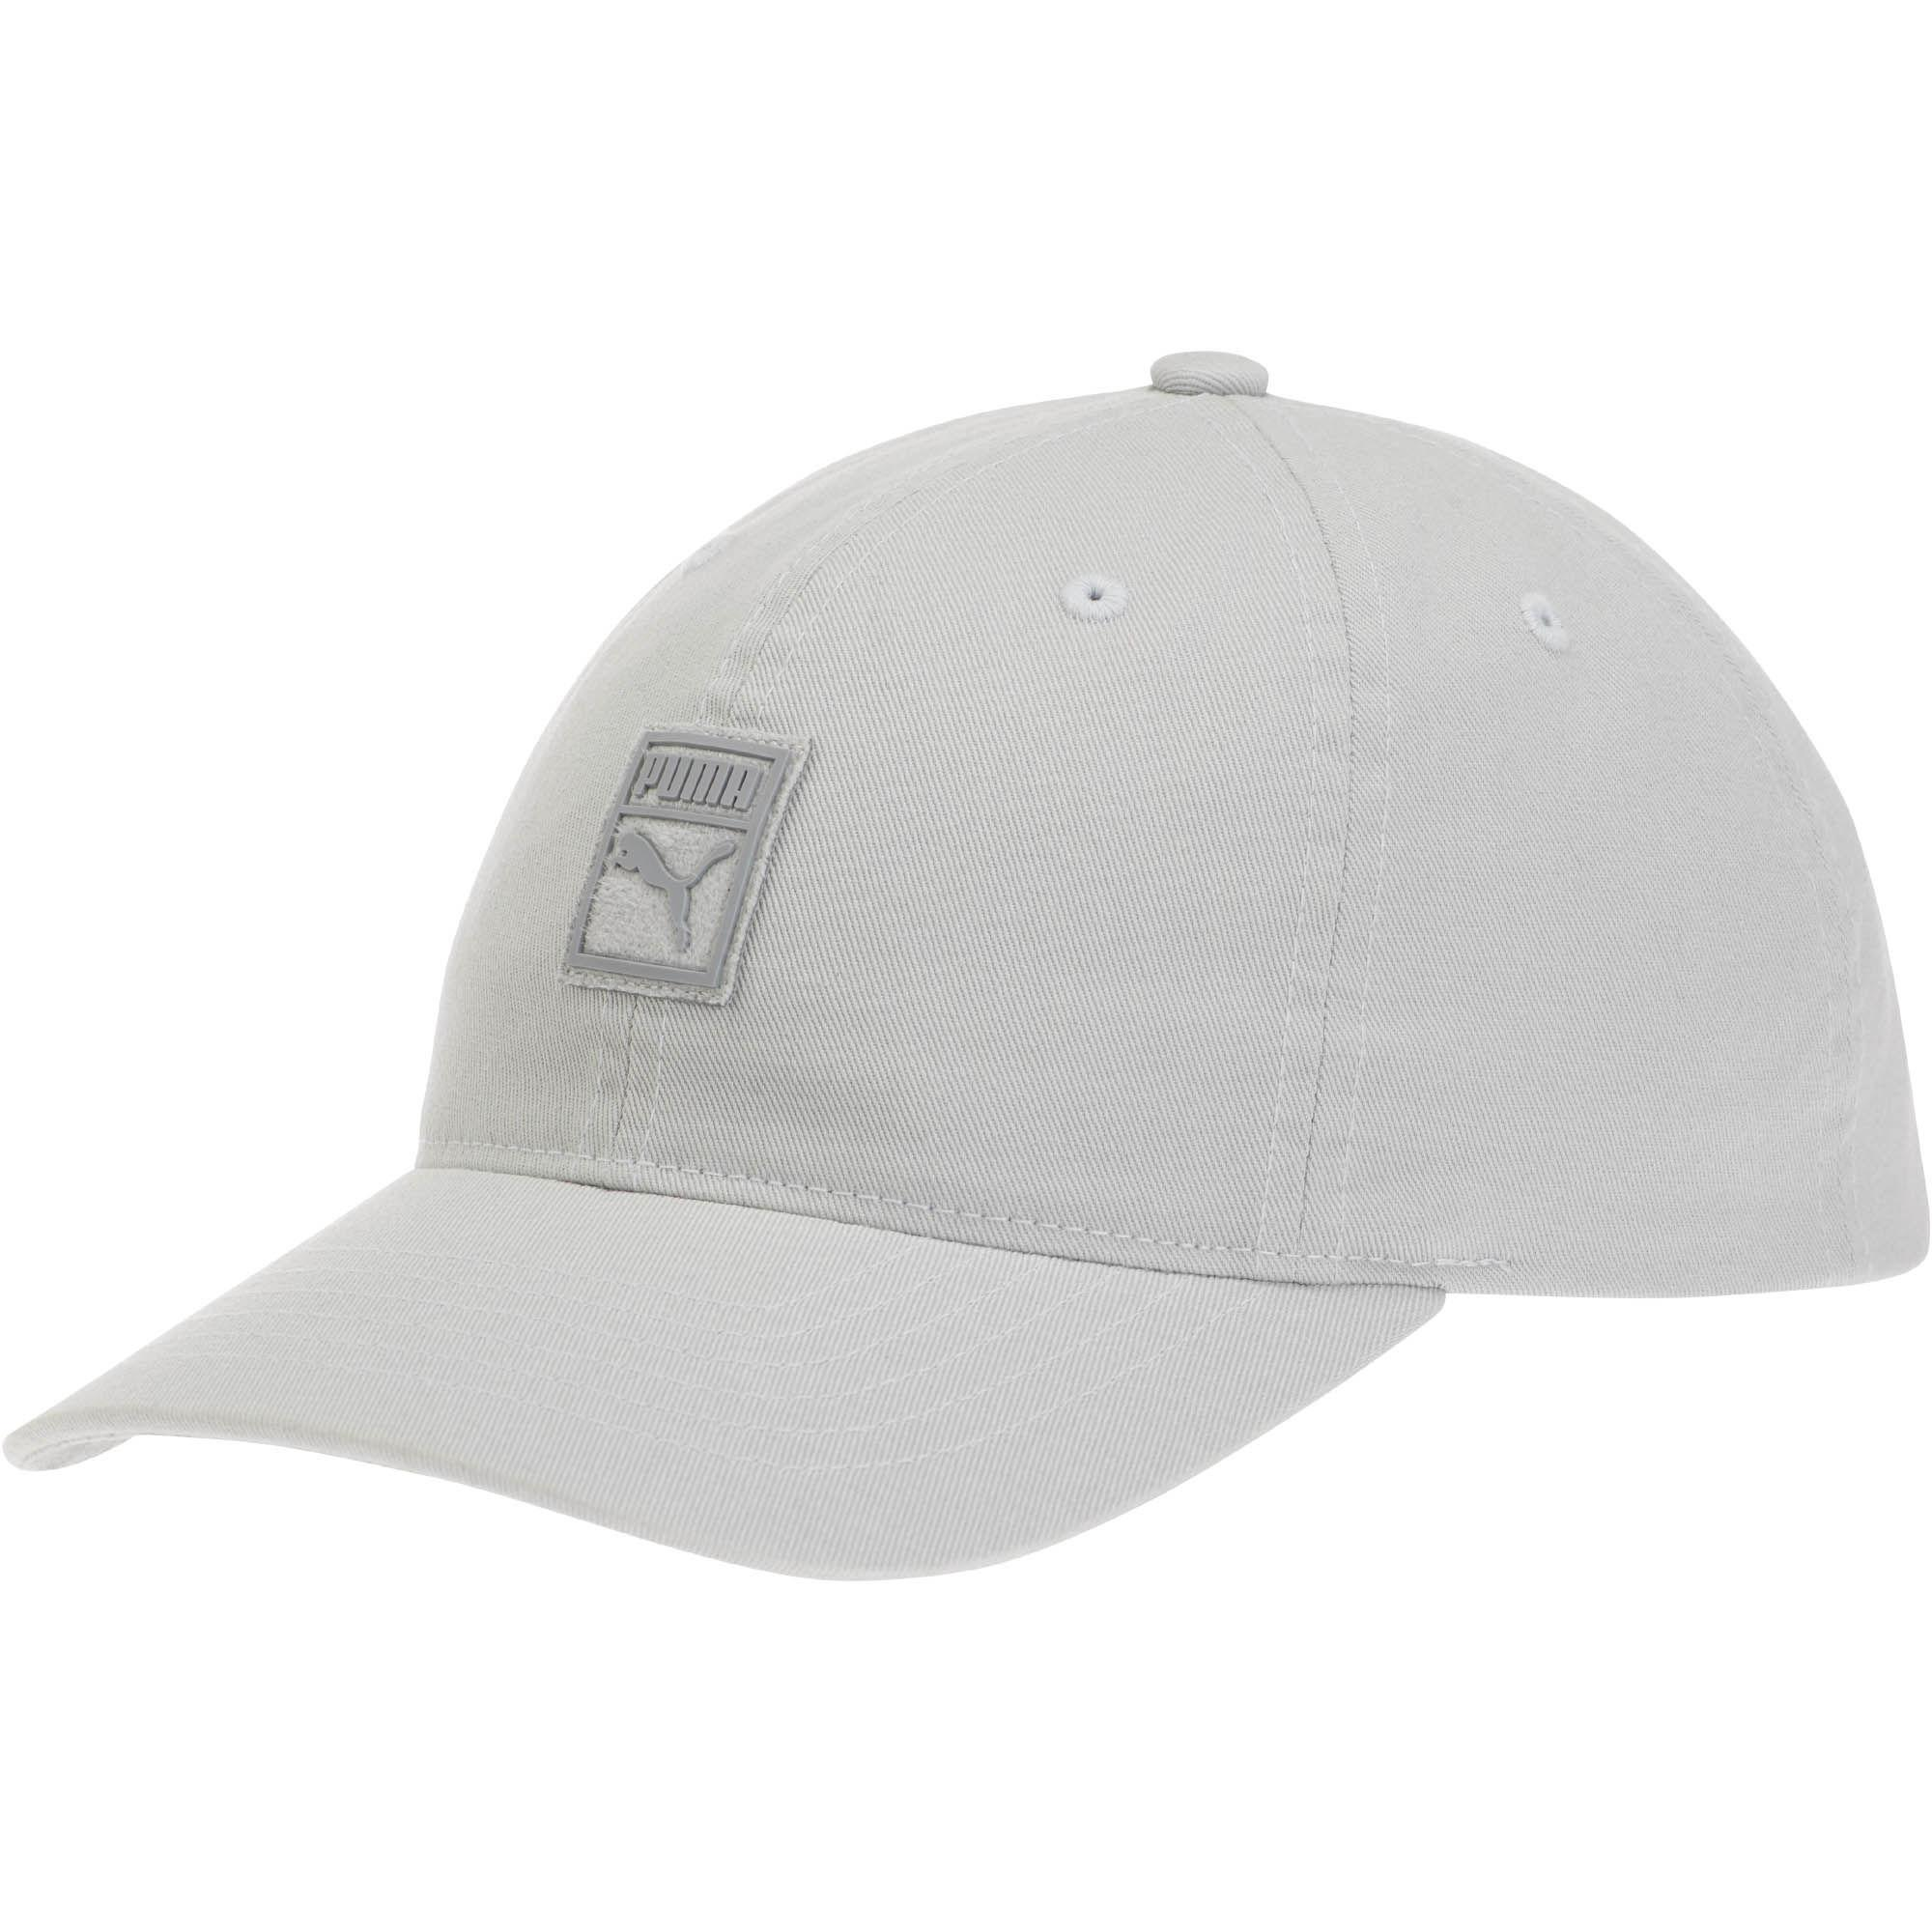 3a7f8b93a59 ... closeout lyst puma papa suede relaxed adjustable hat in gray for men  b2a0b d561c